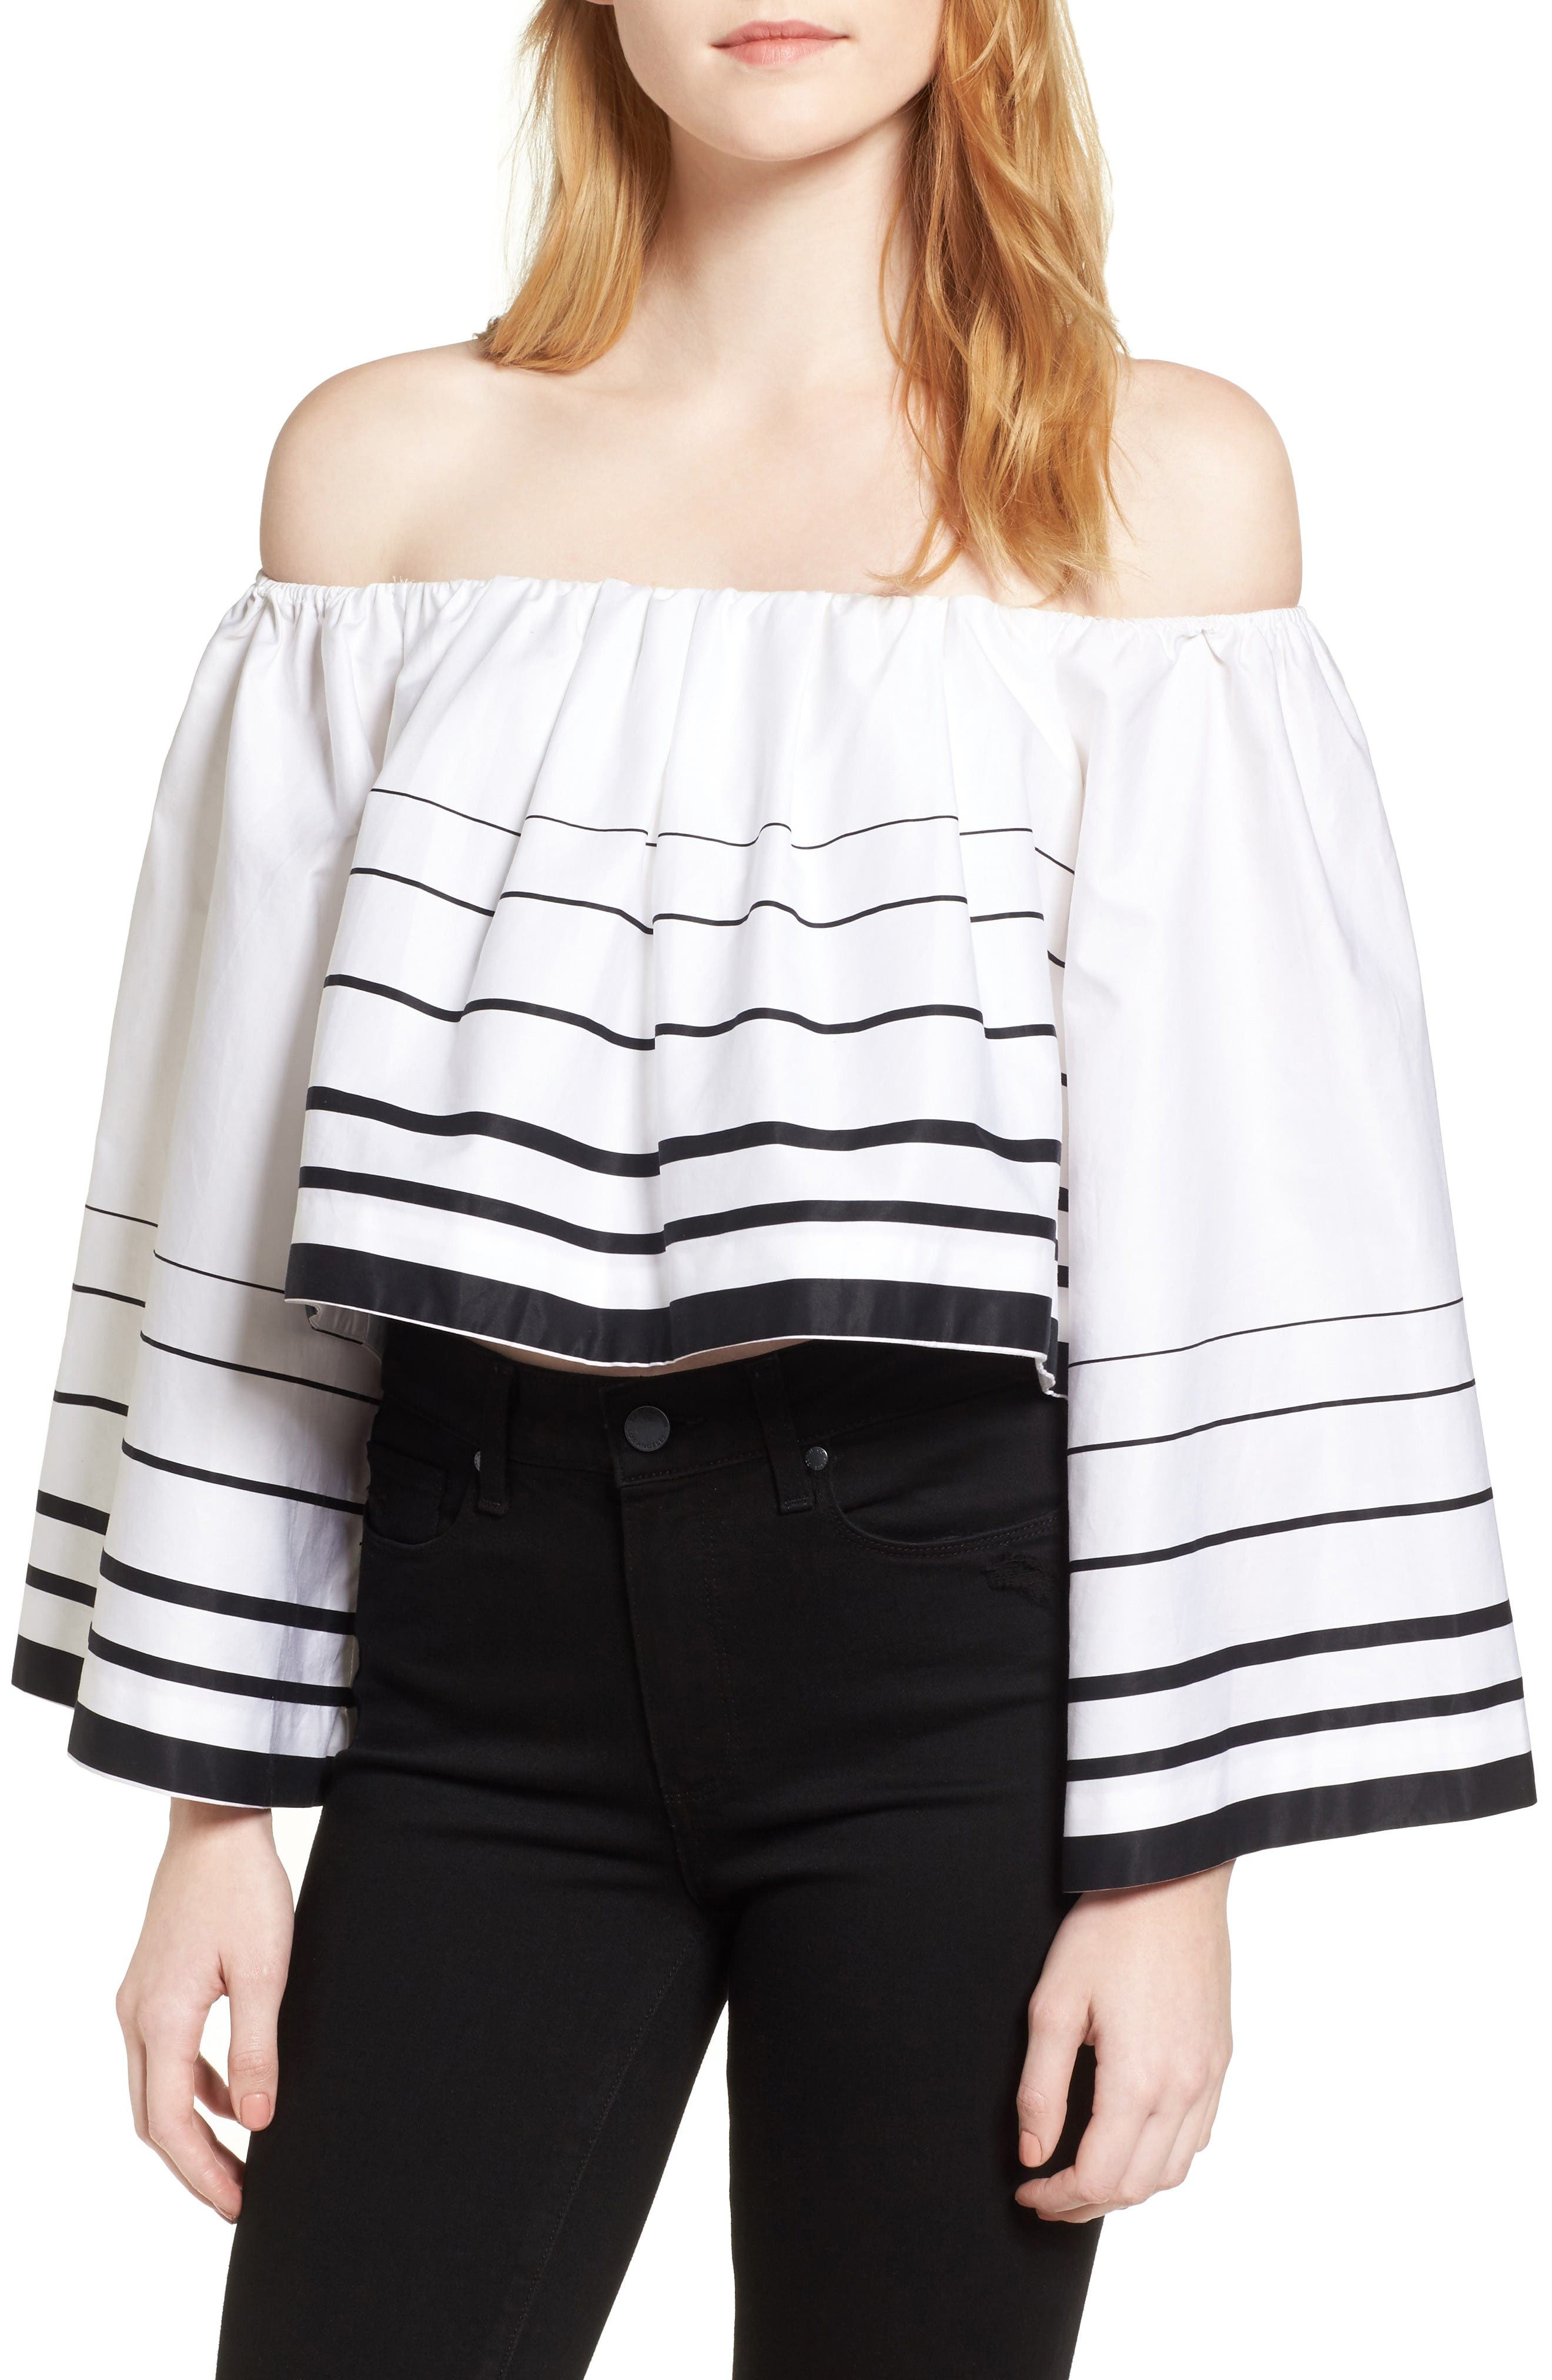 Alternate Image 1 Selected - KENDALL + KYLIE Stripe Off the Shoulder Top